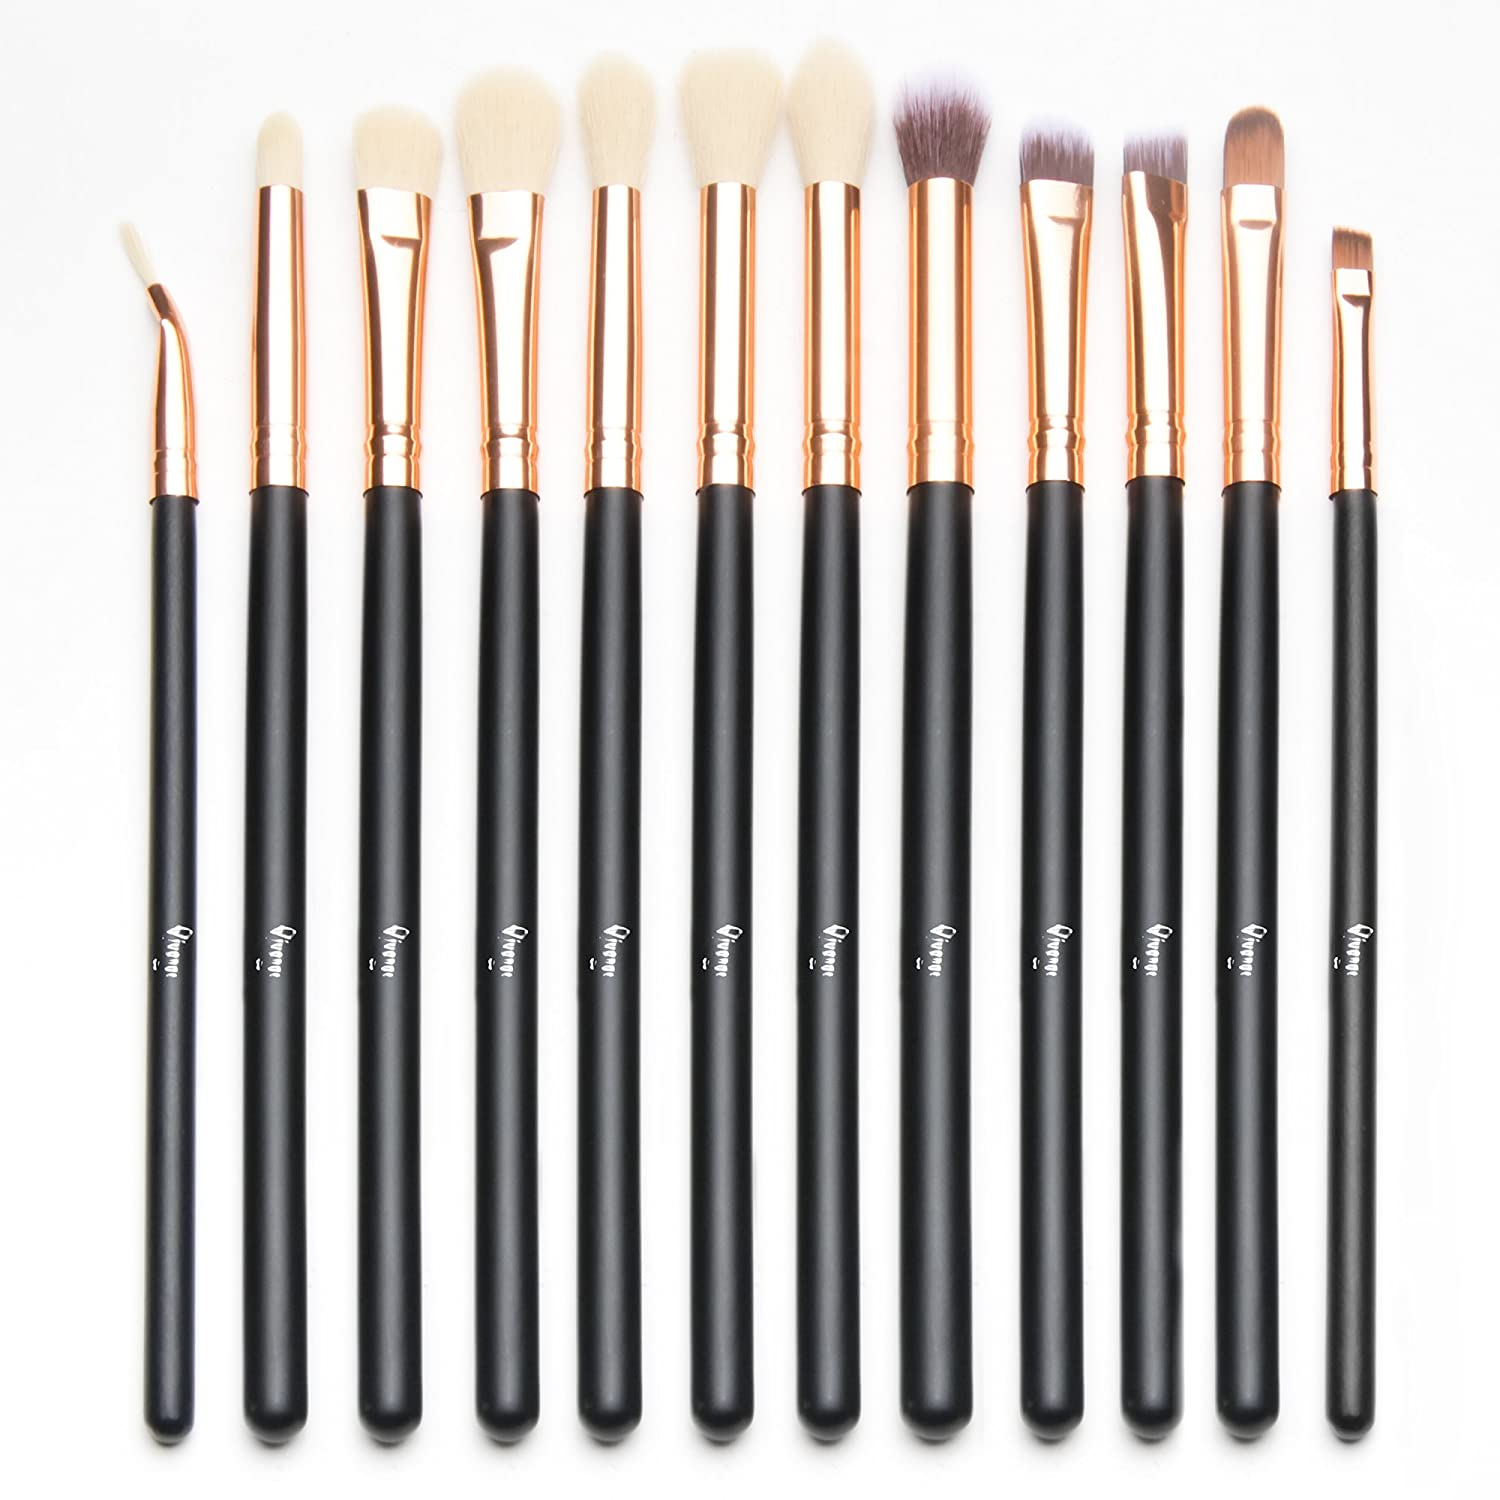 Qivange Eyeshadow Brushes, Vegan Cosmetic Eyebrow Eyeliner Eyeshadow Blending Makeup Brush Set(12pcs, Black with Rose Gold)